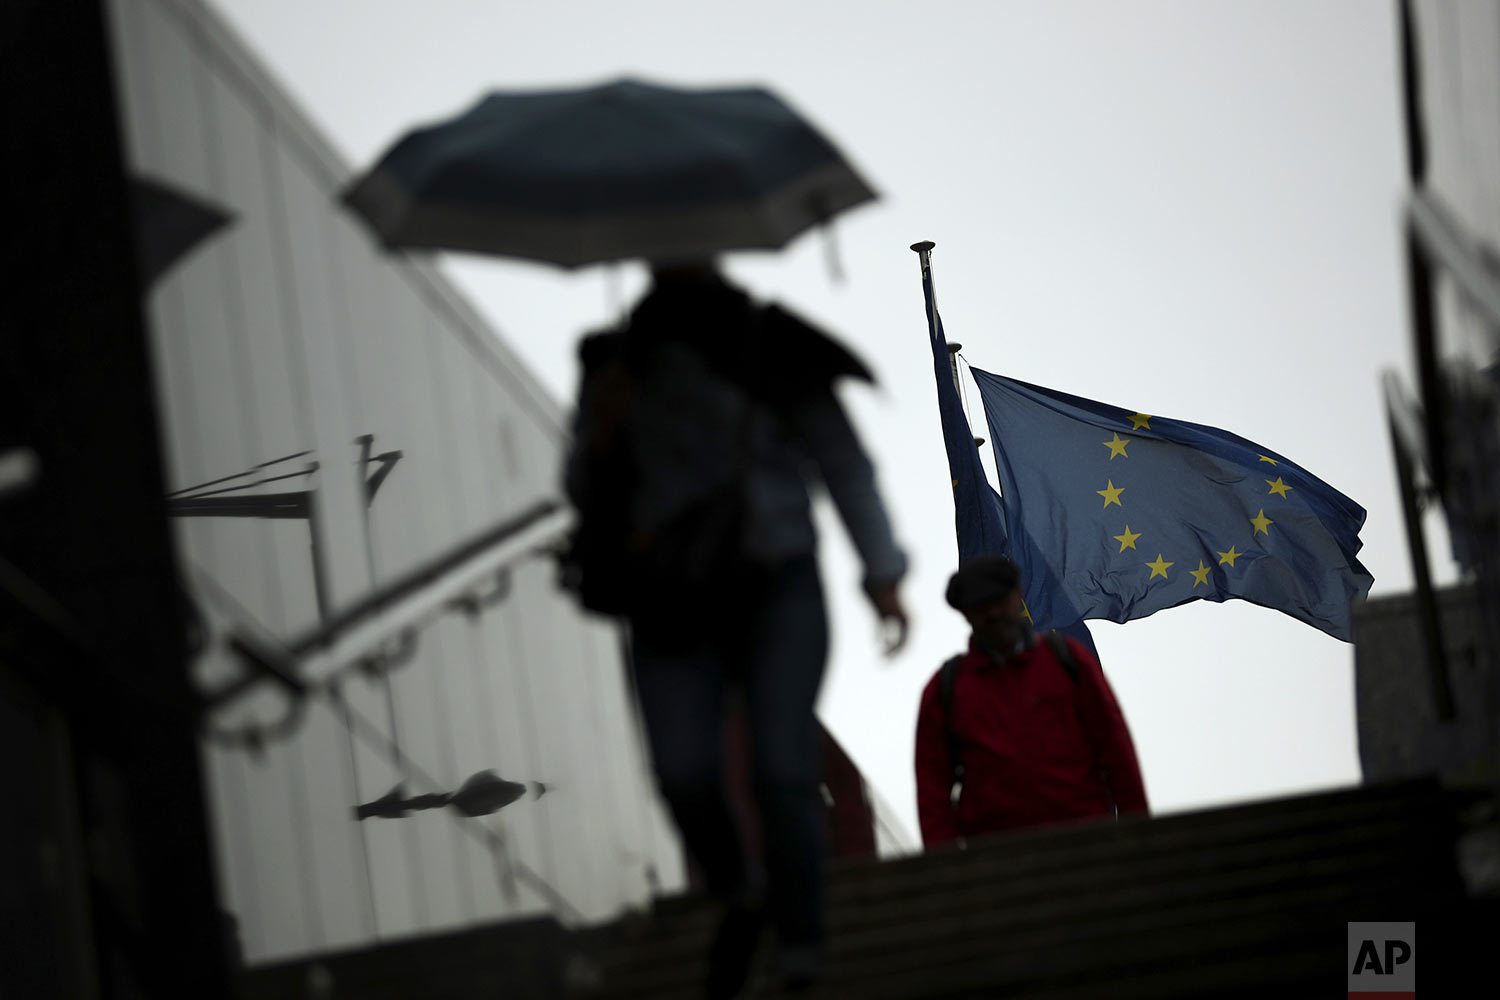 Passers-by shelter against the rain outside the EU headquarters in Brussels, Wednesday, Sept. 4, 2019. The European Union says so far it has received no proposals from the British government aimed at overcoming the impasse in Brexit talks. (AP Photo/Francisco Seco)